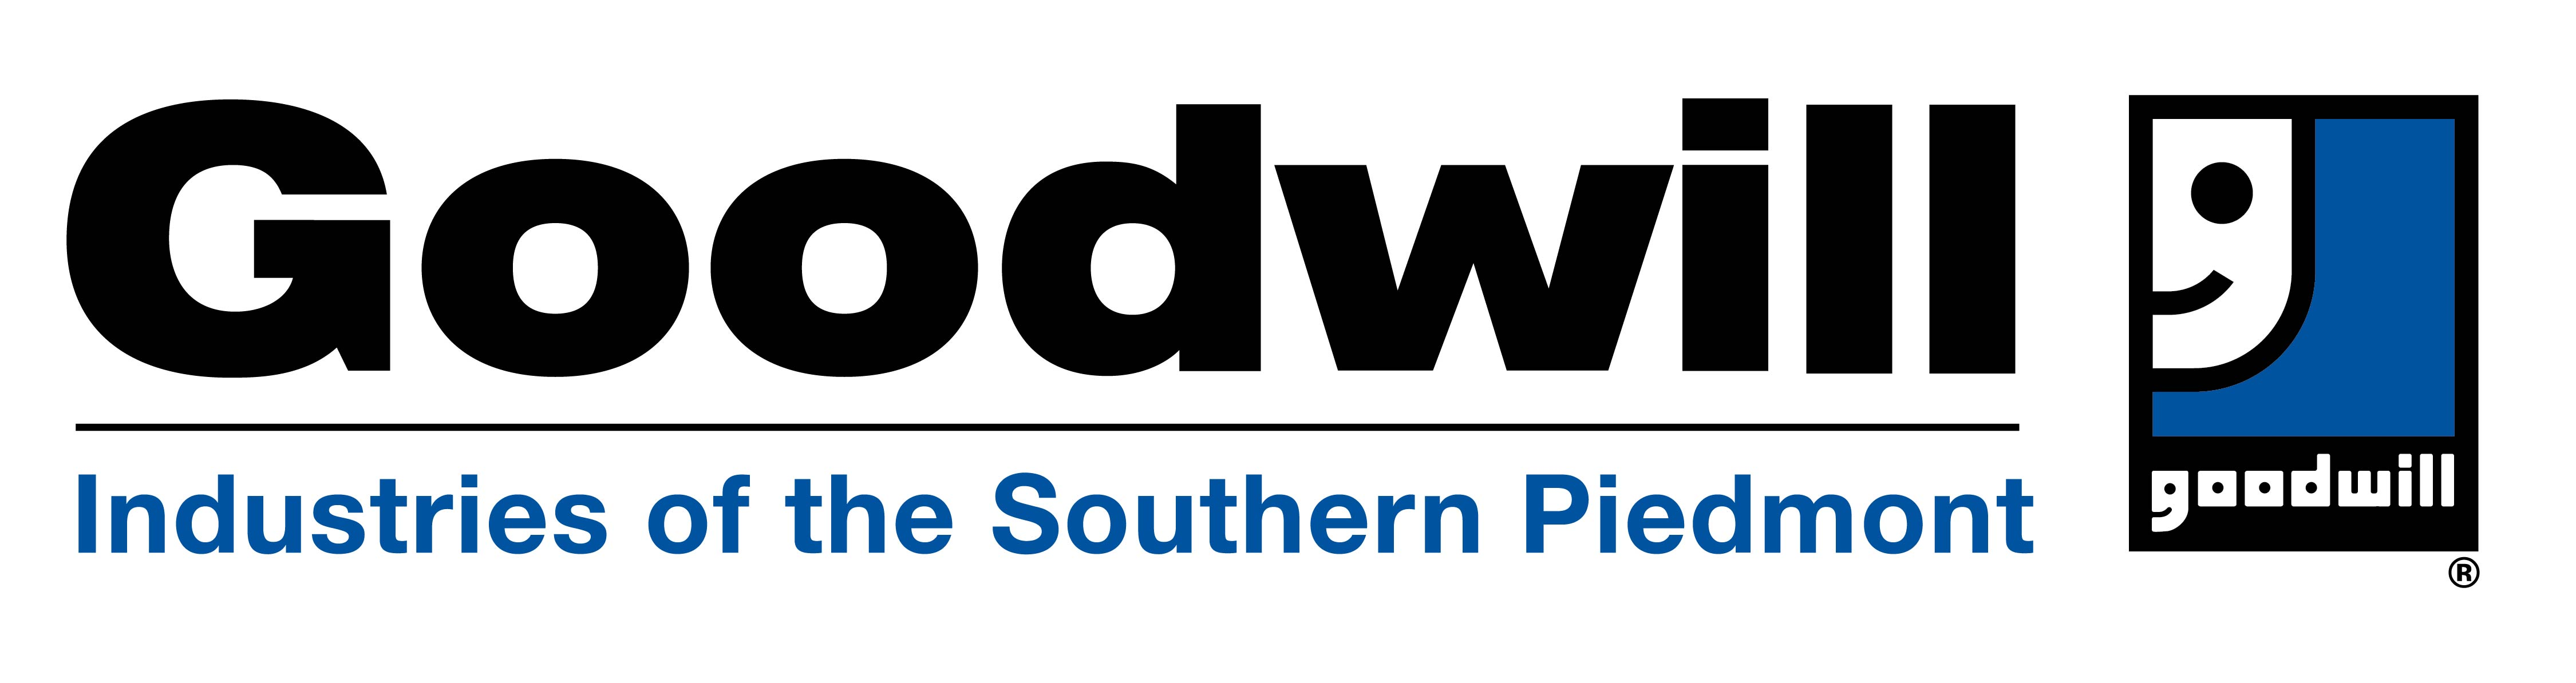 Goodwill® Industries of the Southern Piedmont President ... Goodwill